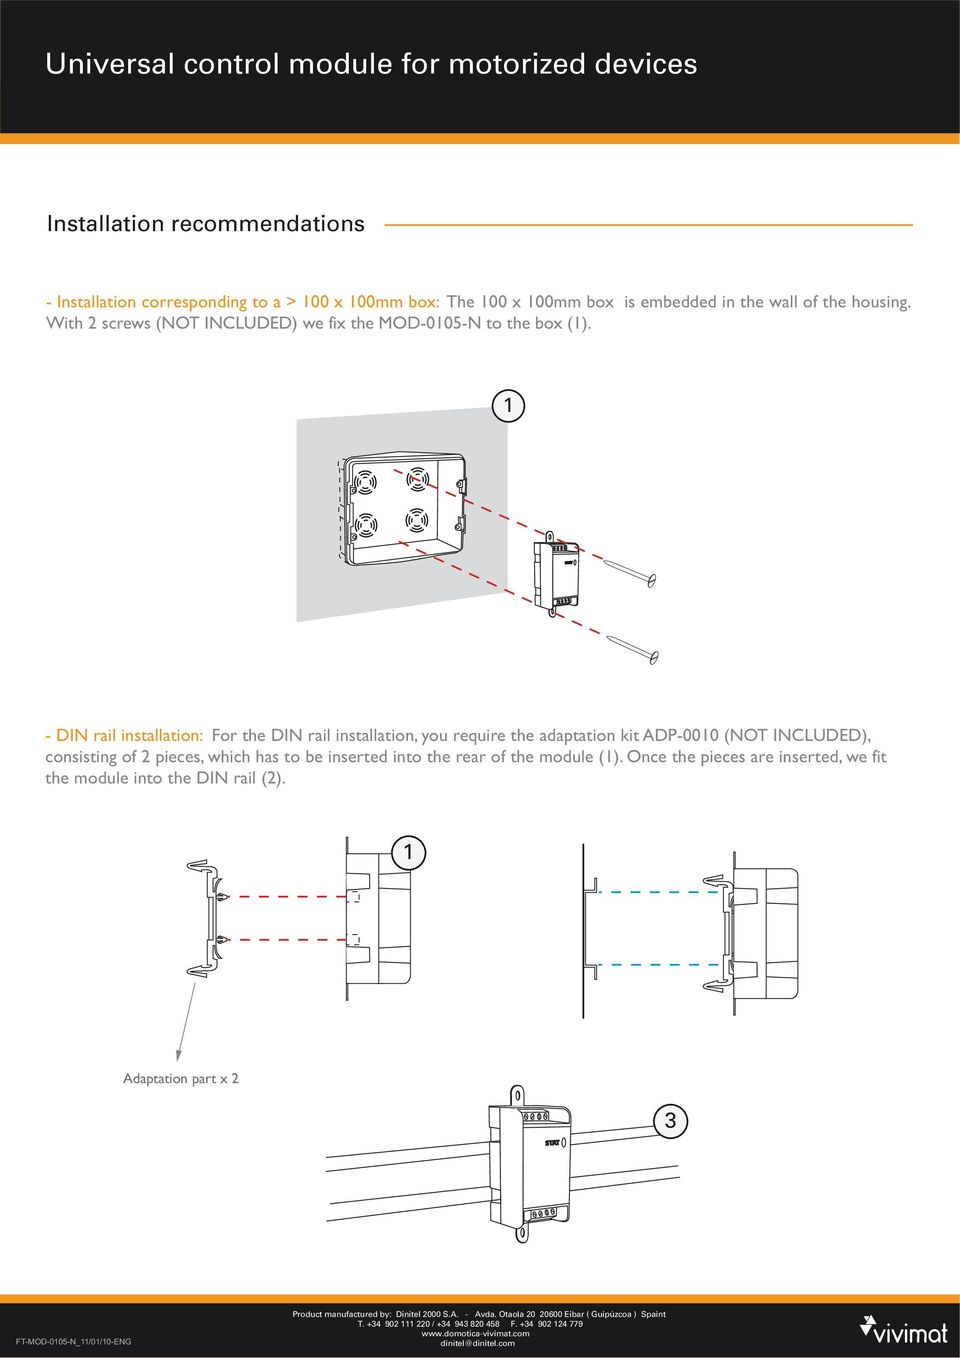 1 - DIN rail installation: For the DIN rail installation, you require the adaptation kit ADP-0010 (NOT INCLUDED), consisting of 2 pieces, which has to be inserted into the rear of